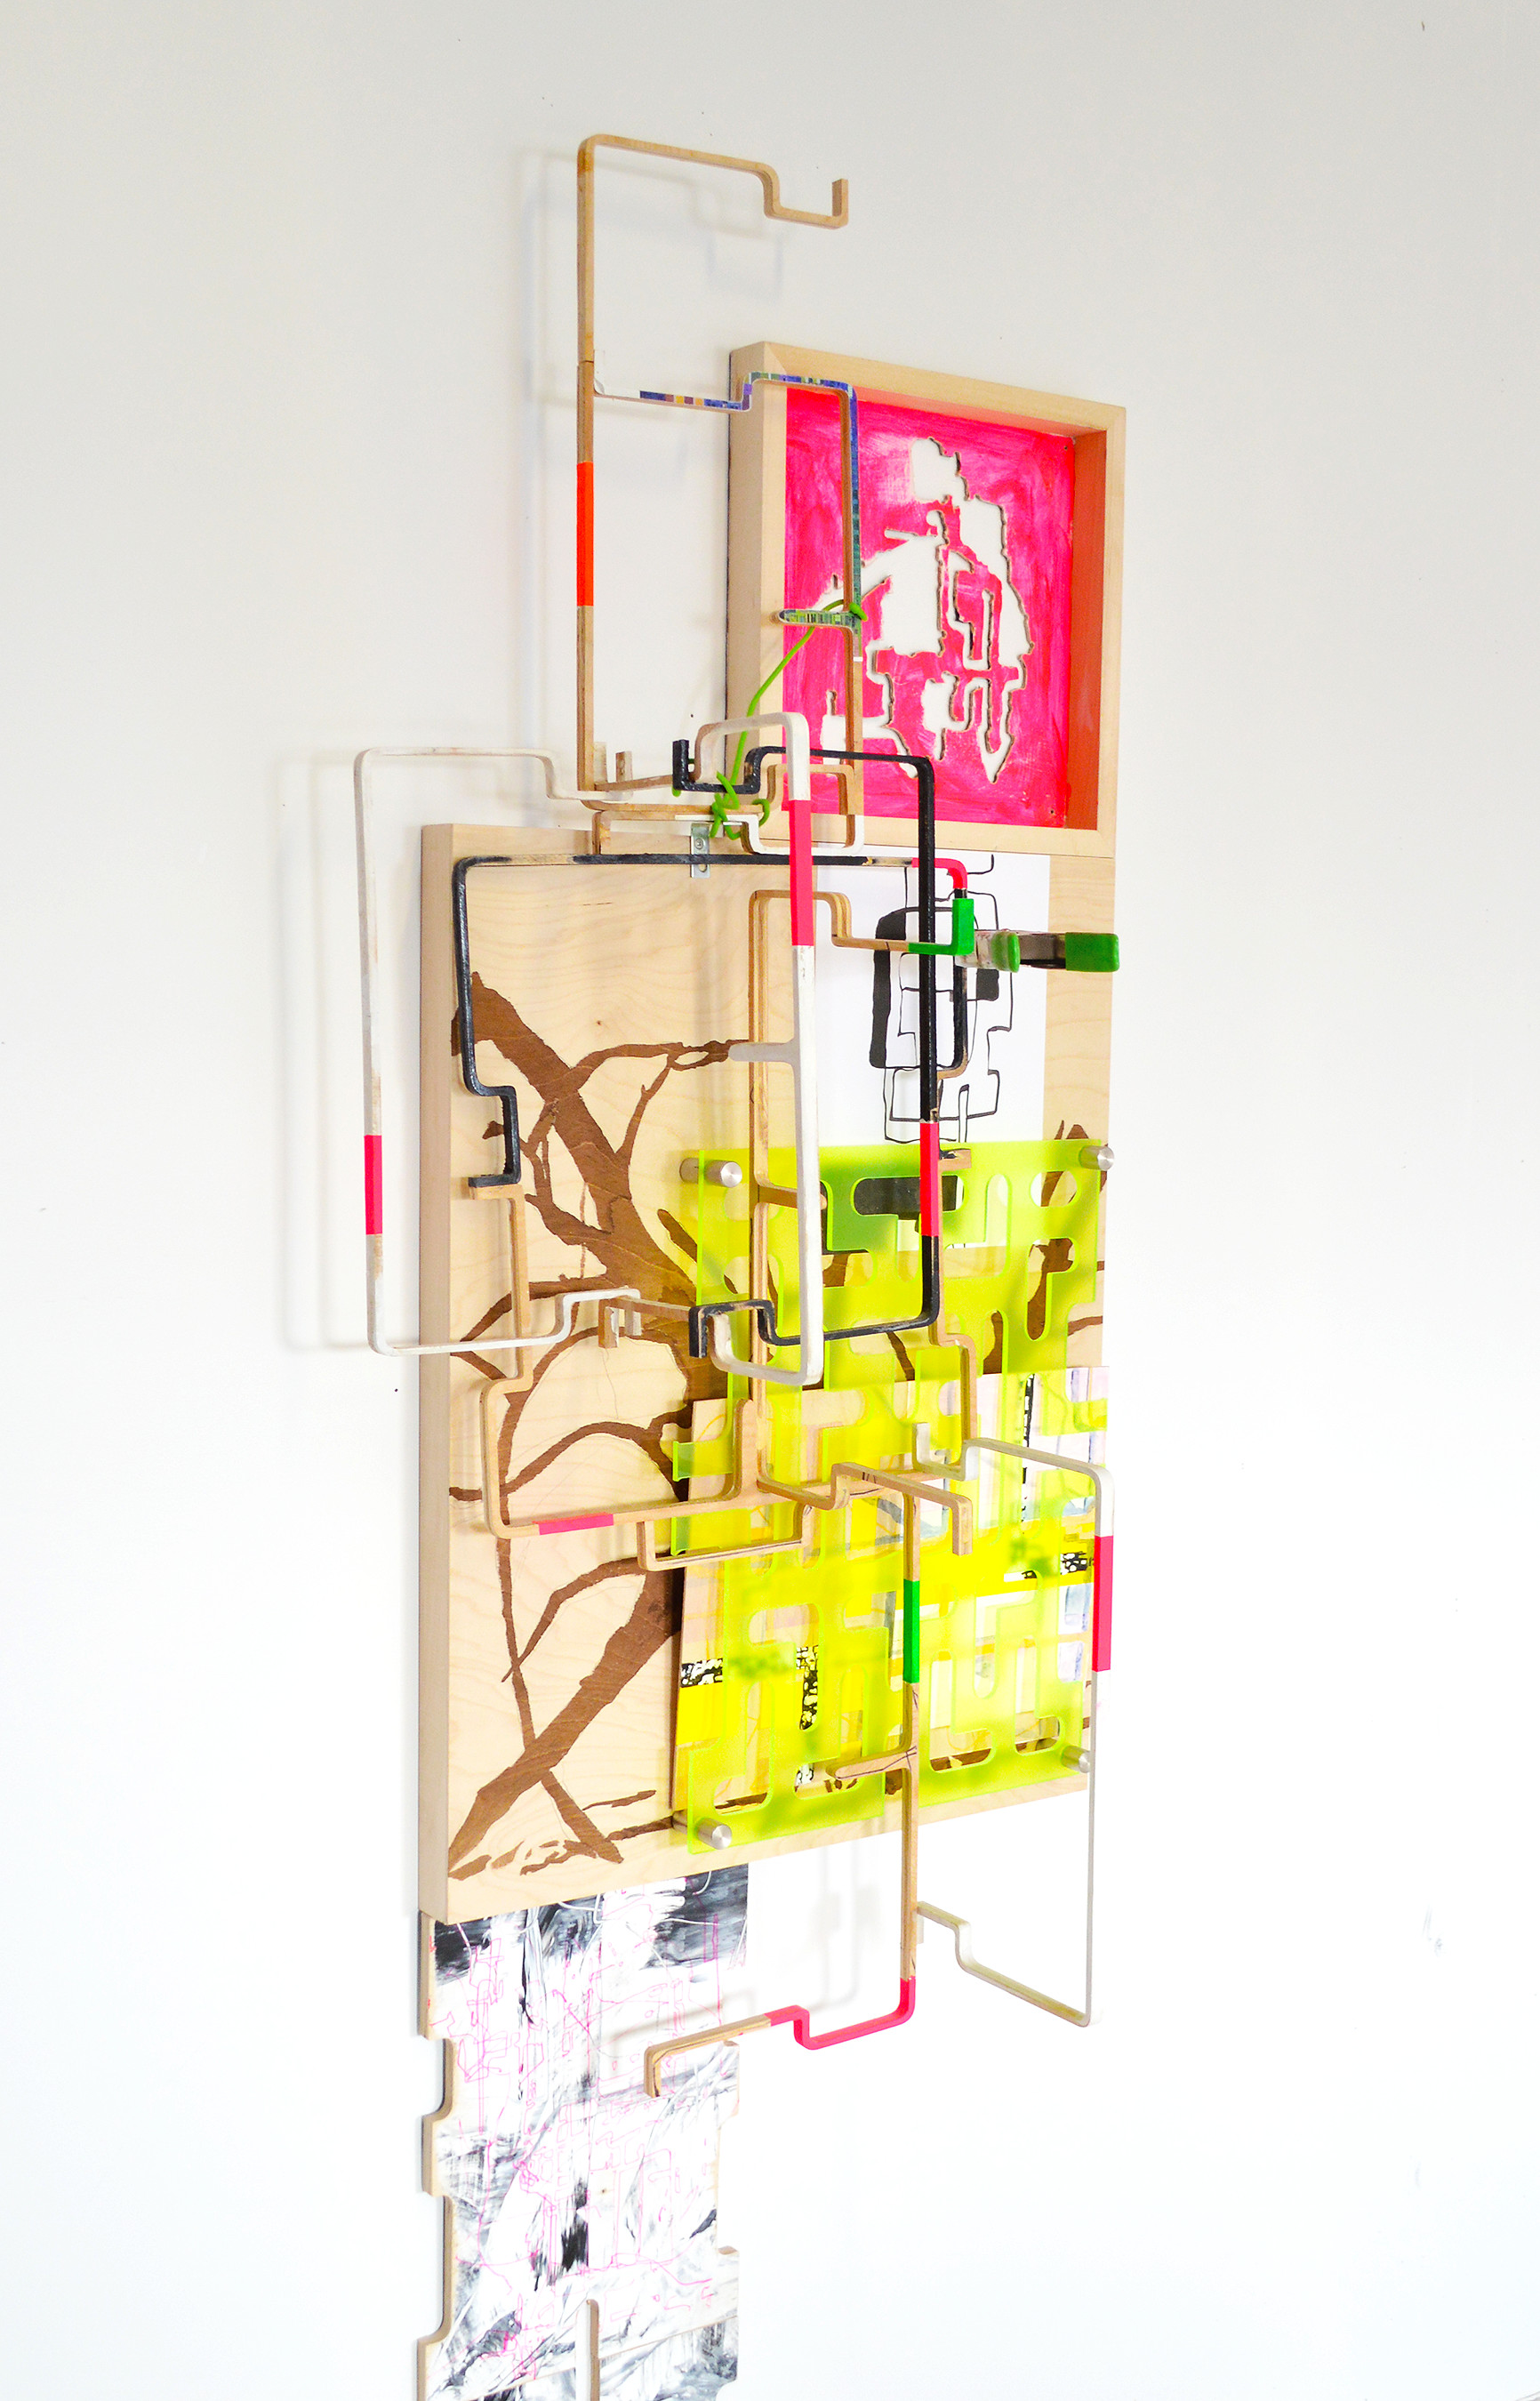 BS-i1-3.0_2015, 2015-16, Mixed media on wood, paper, and lucite, 78.5 x 27 x 11.75 inches